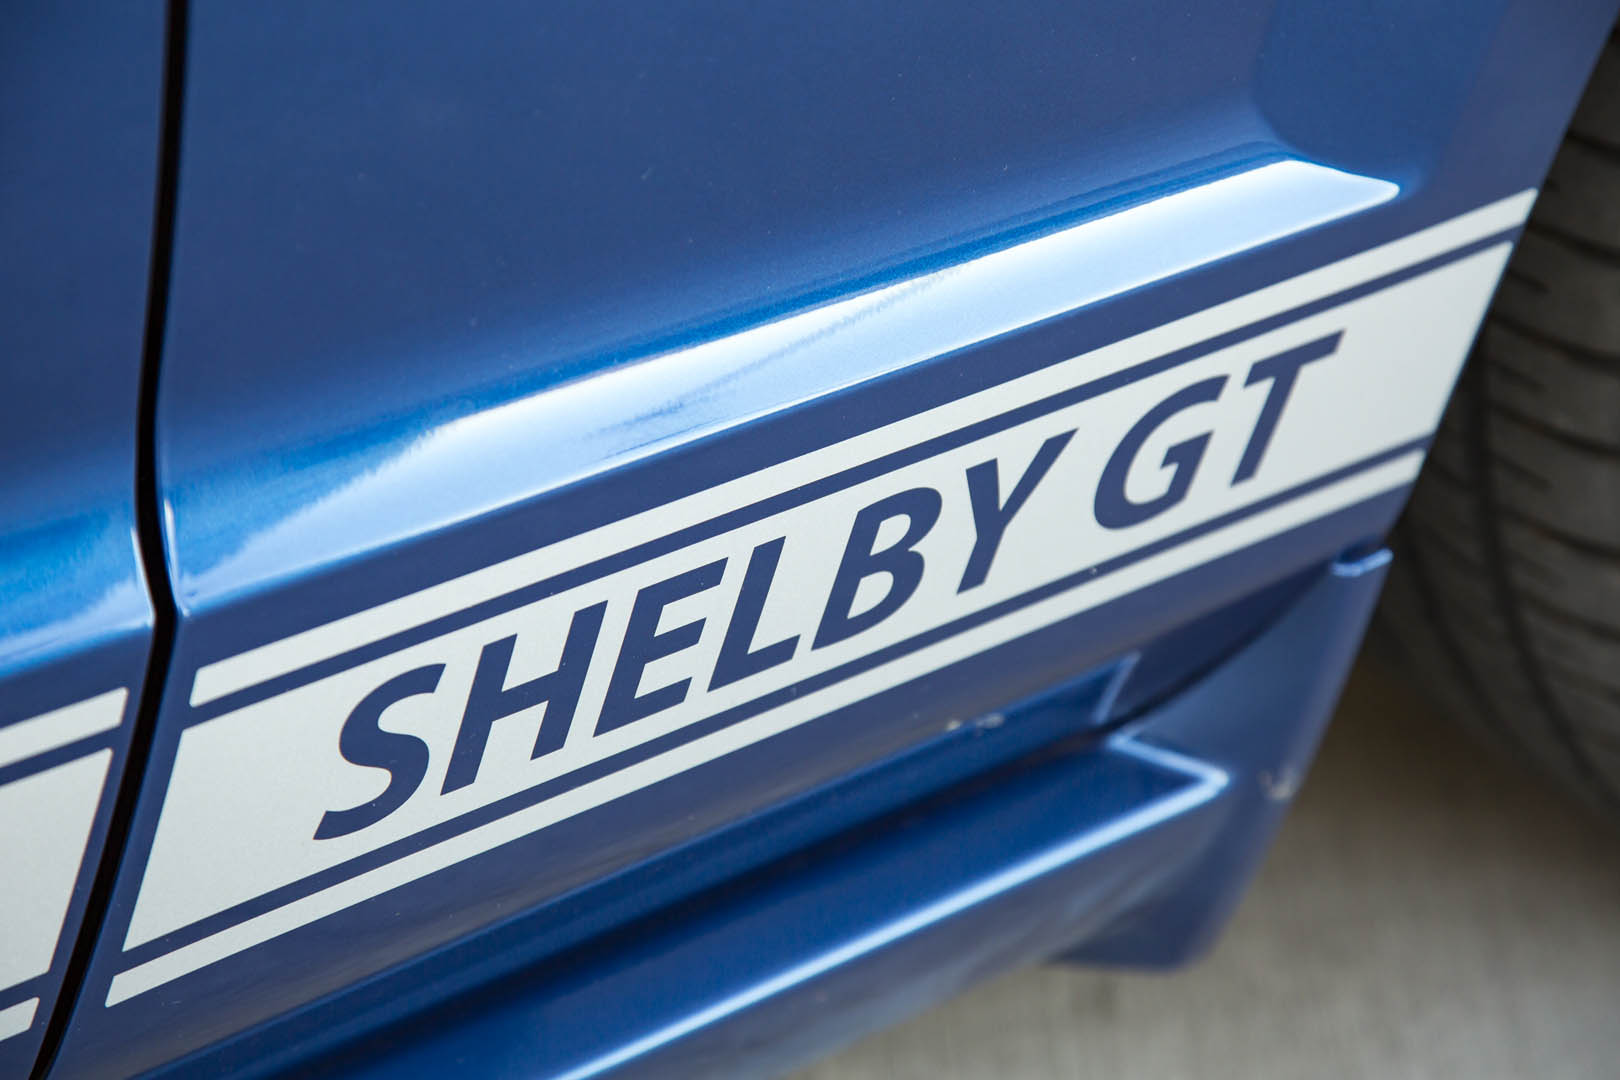 2007 Shelby GT convertible prototype paint detail